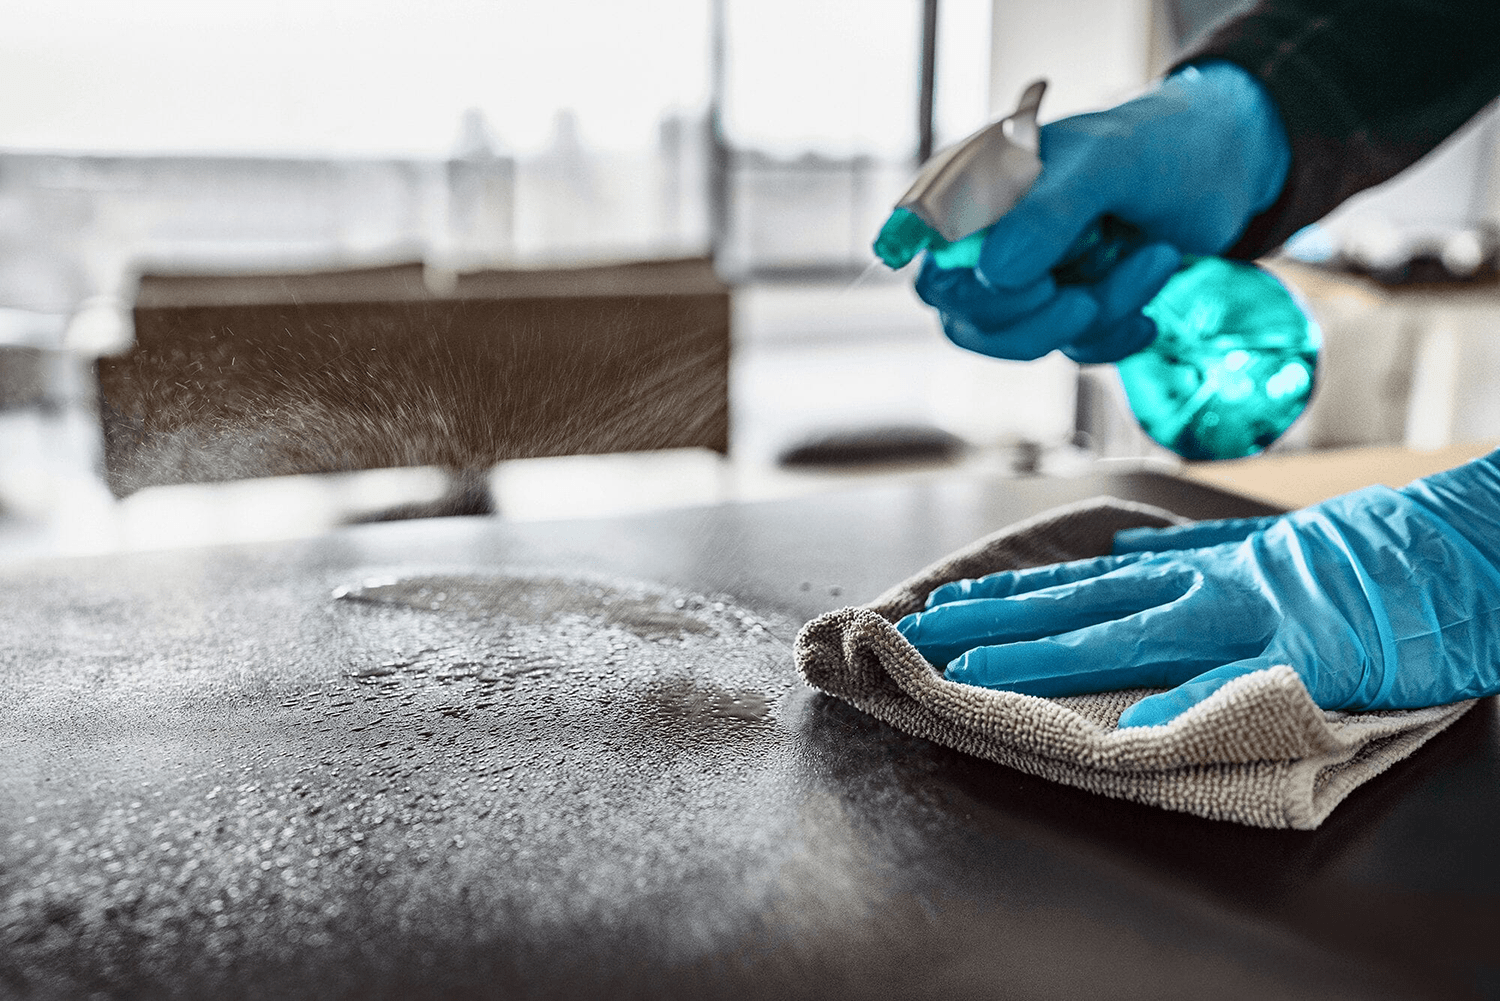 How To Mitigate Disinfecting Downtime